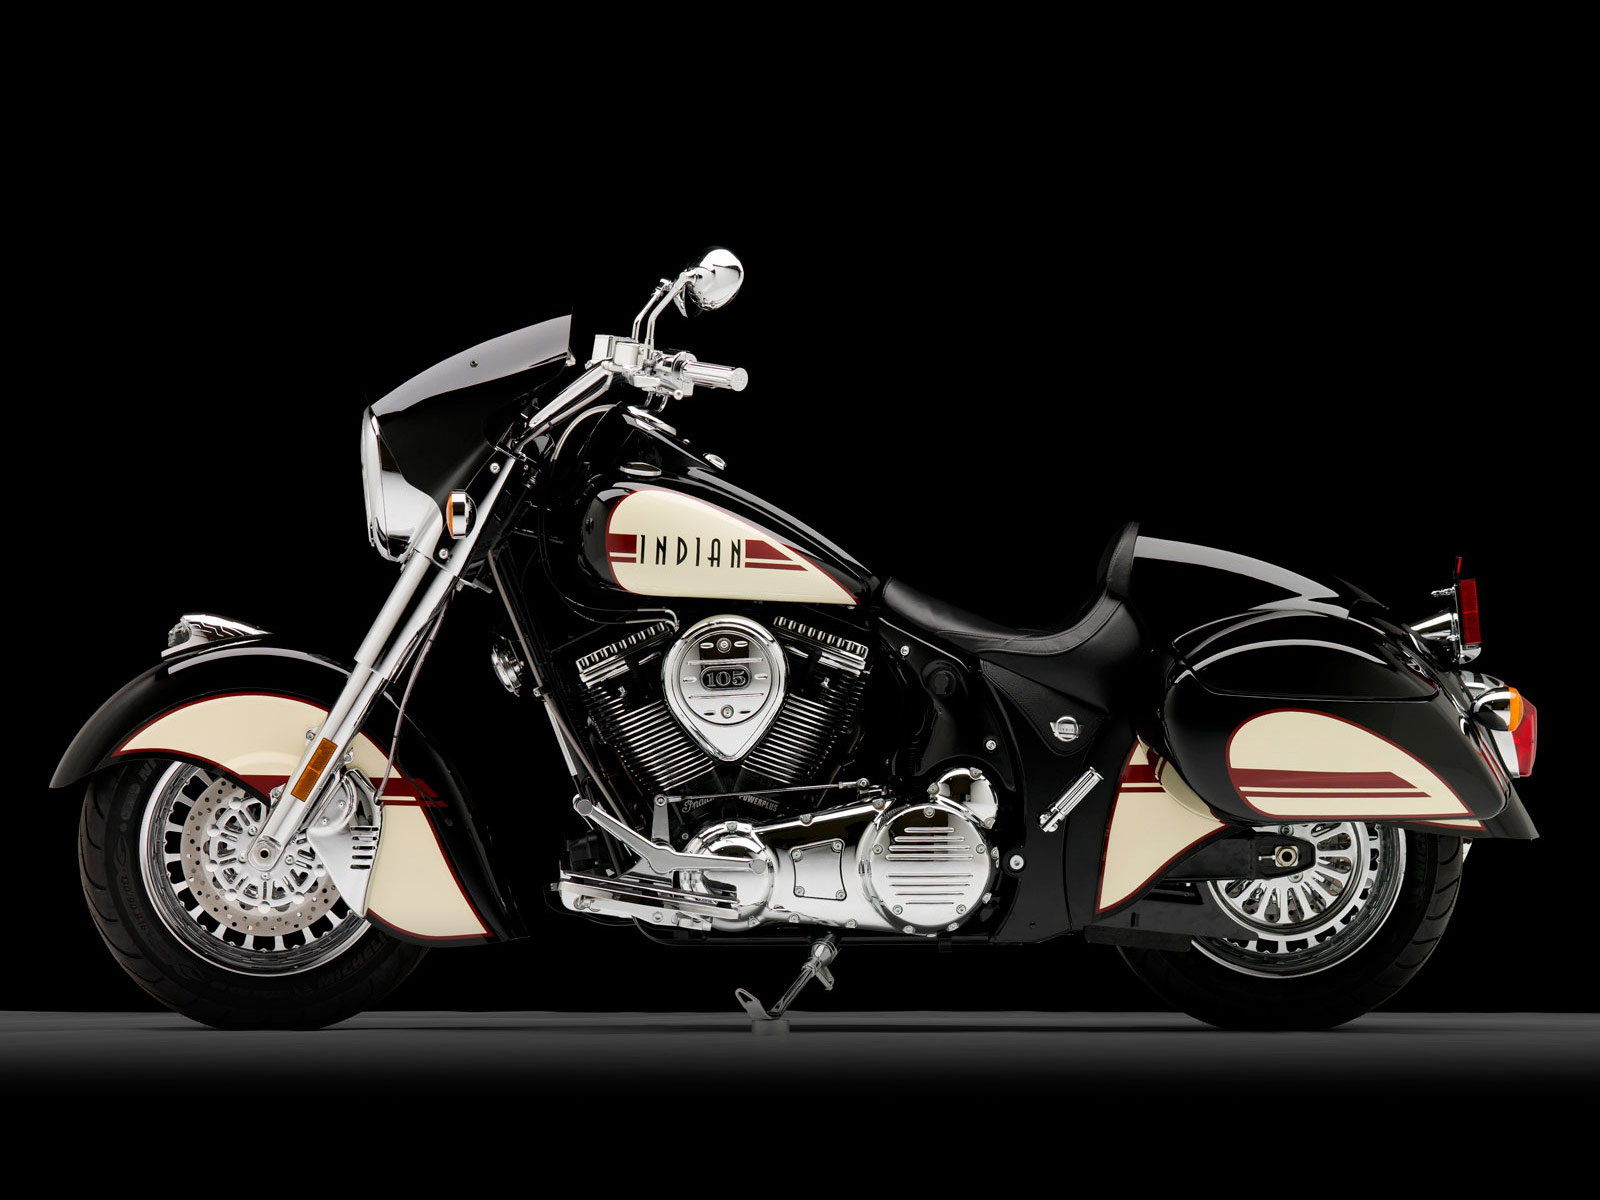 2011 Indian Chief Black Hawk motorcycle desktop wallpaper 1jpg 1600x1200